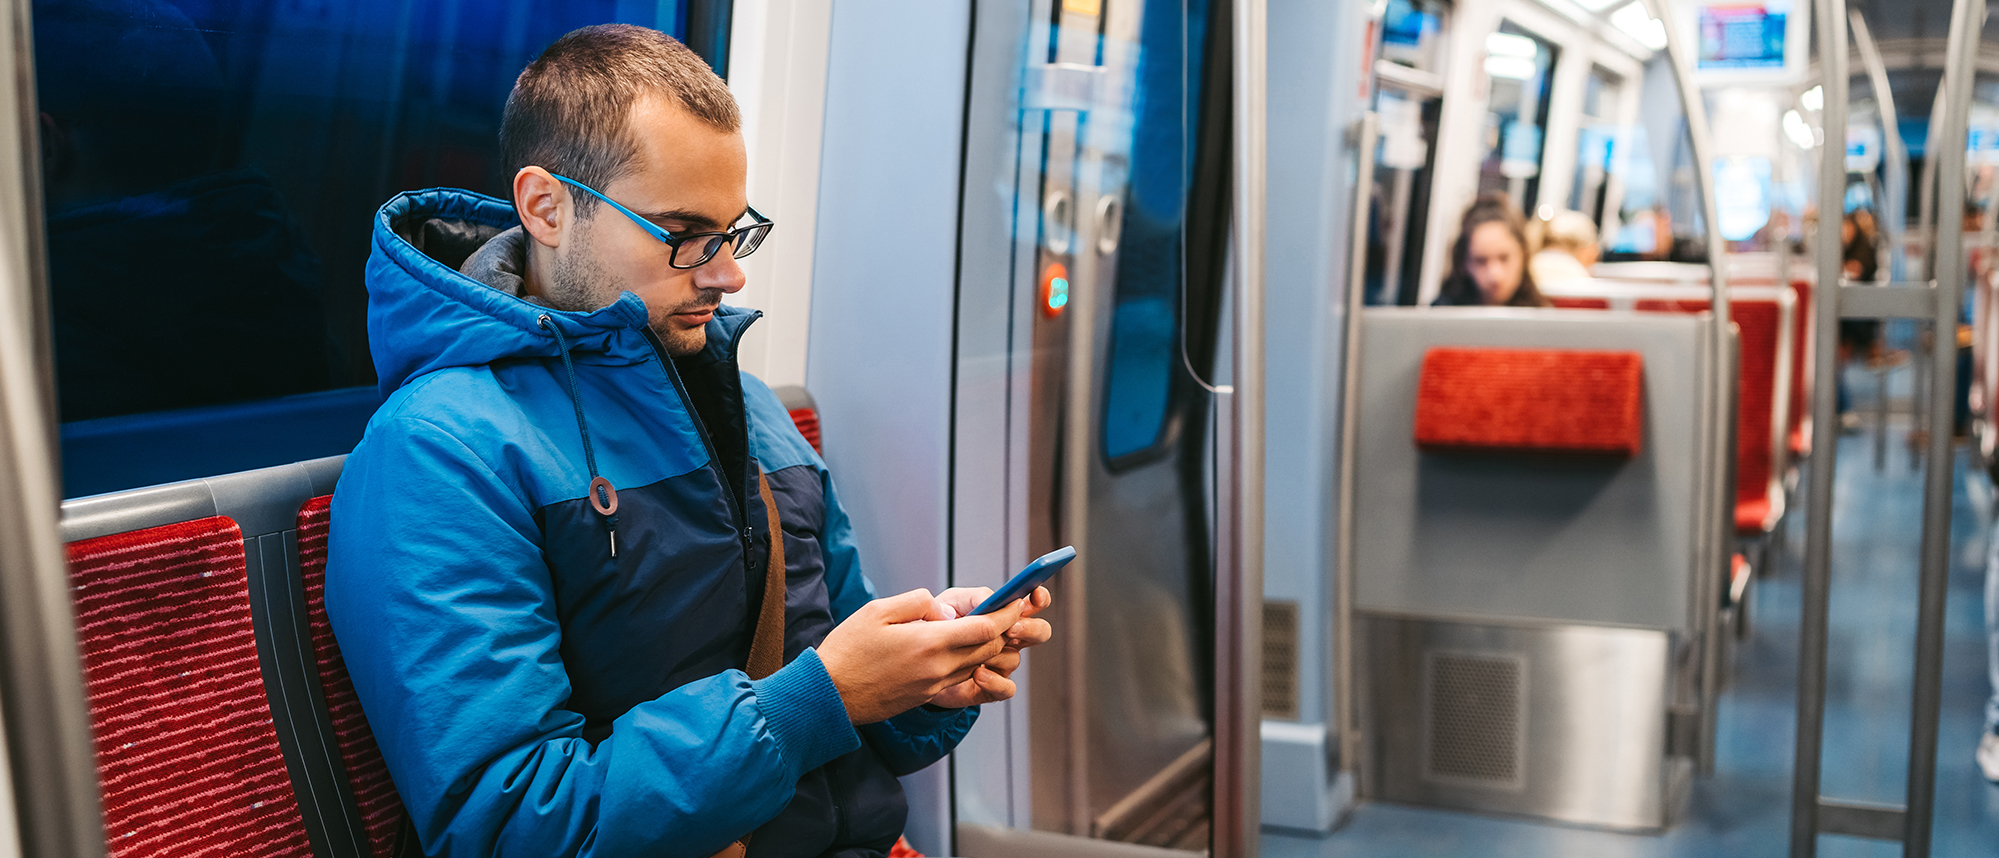 Young man riding the subway is using phone for an online doctor visit